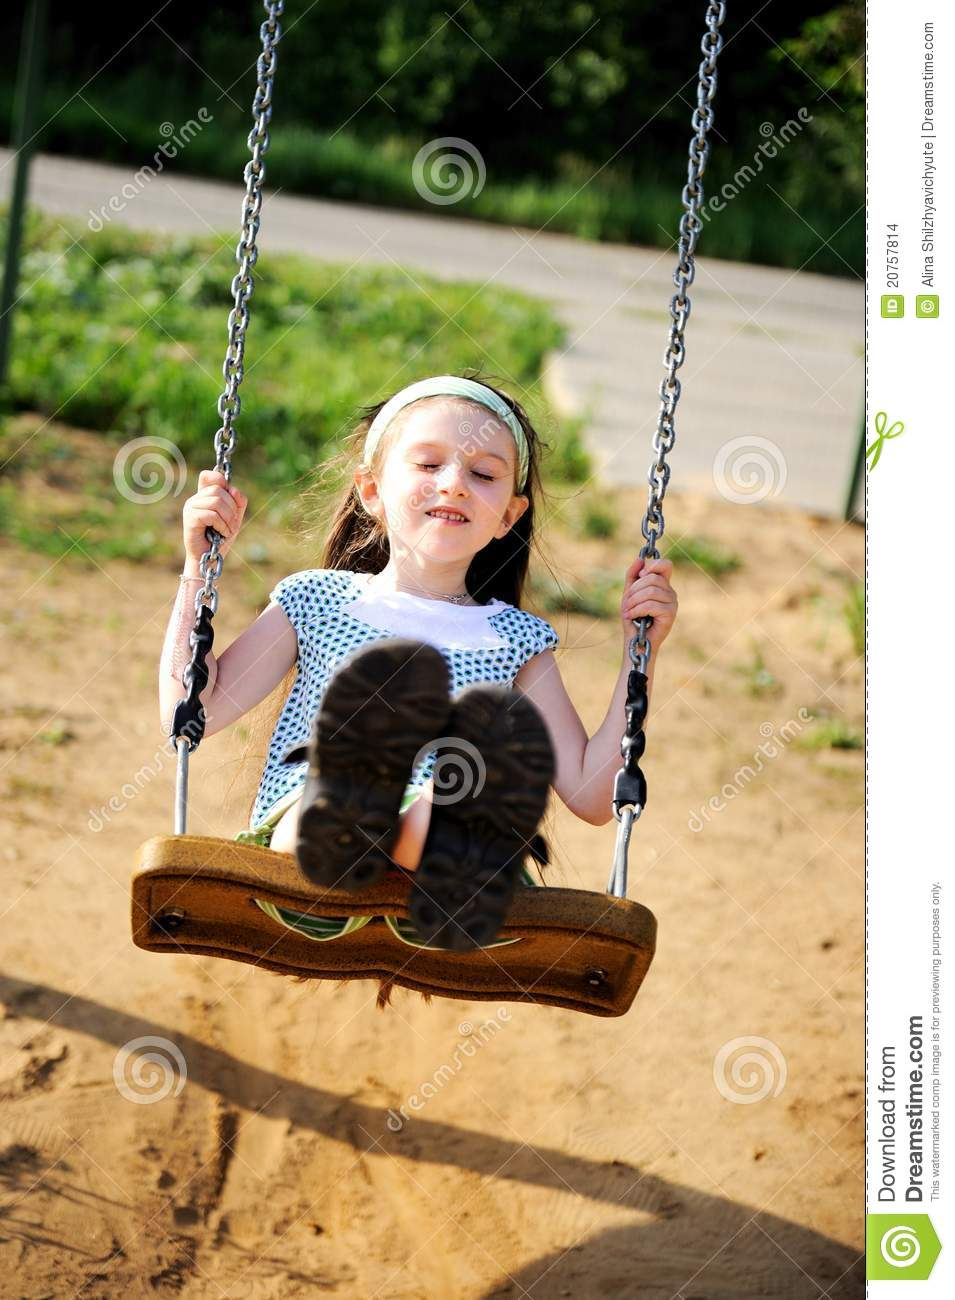 Join. happens. swinging at the playground sense